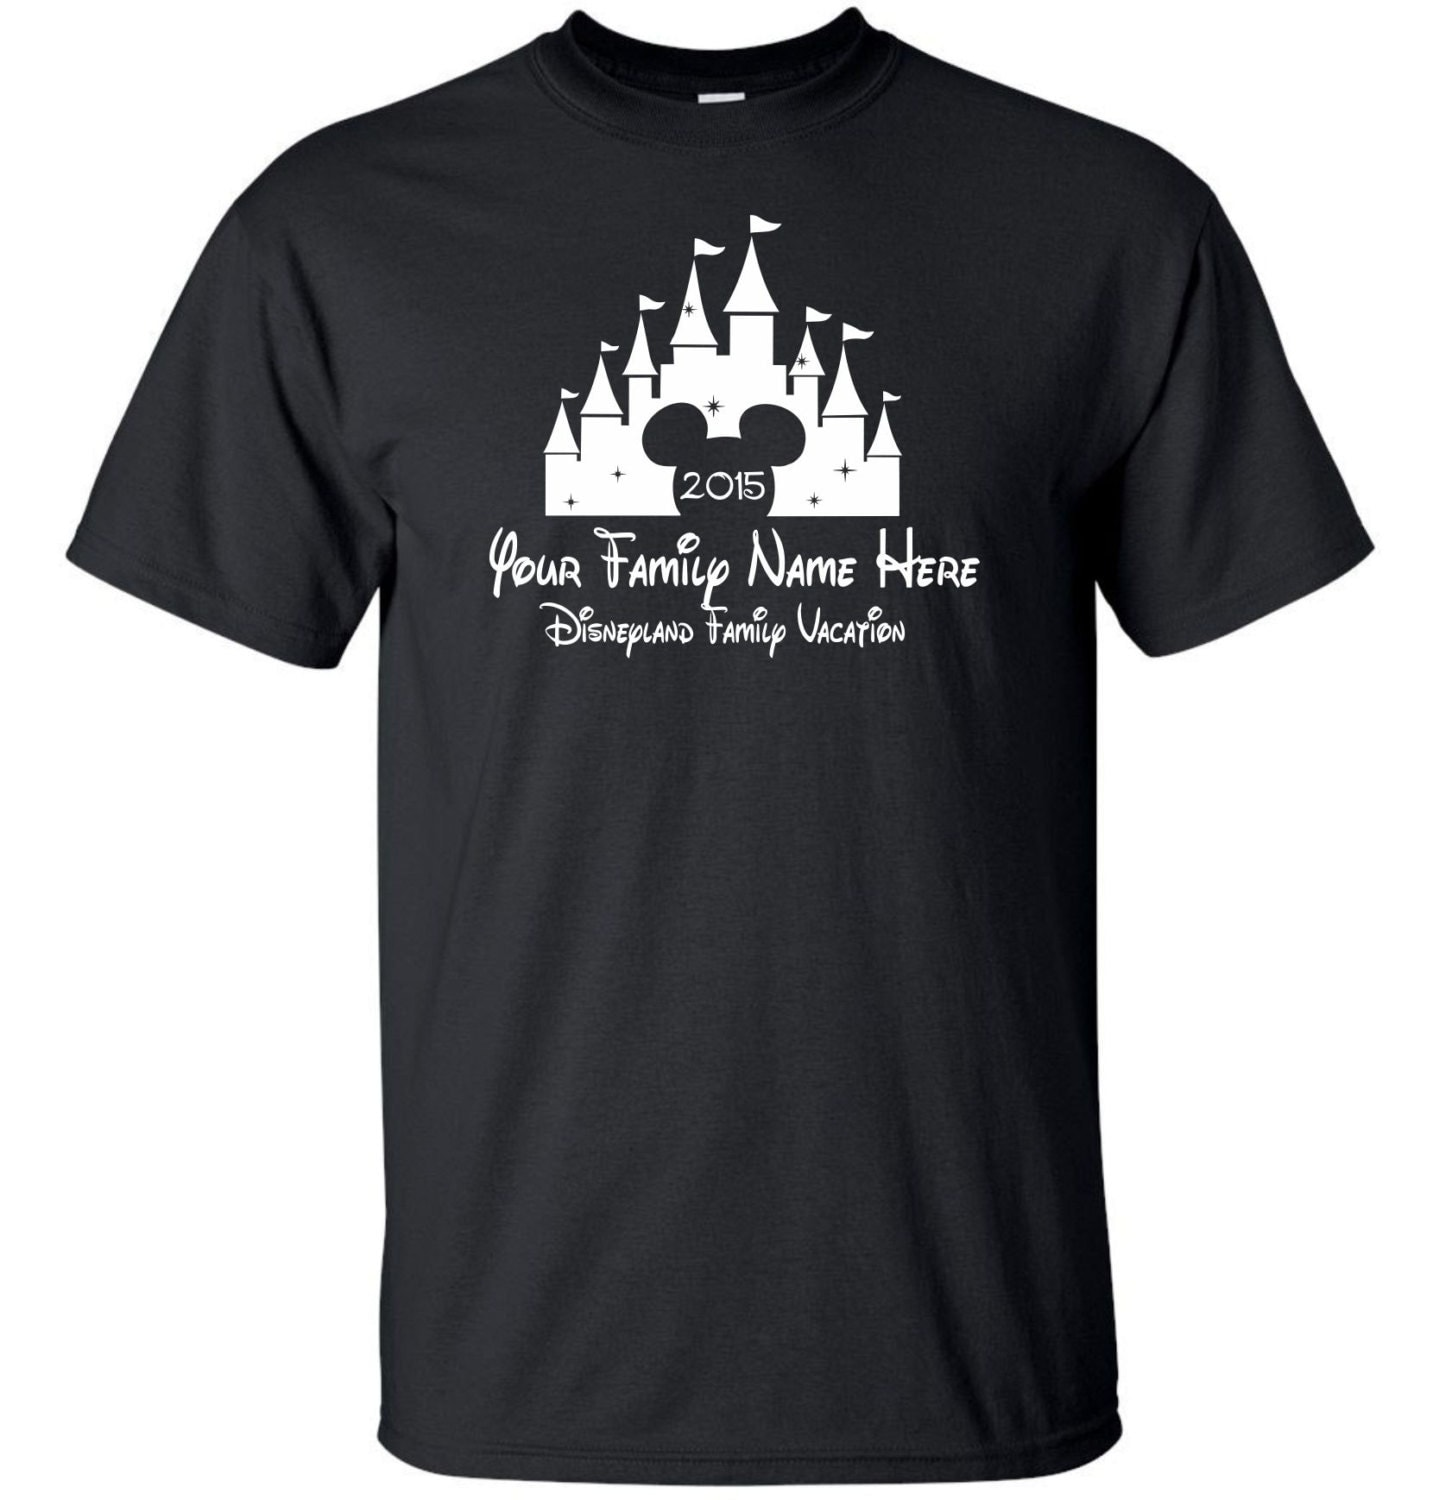 Custom disney vacation t shirt by mathesongraphics on etsy for Custom made tee shirts